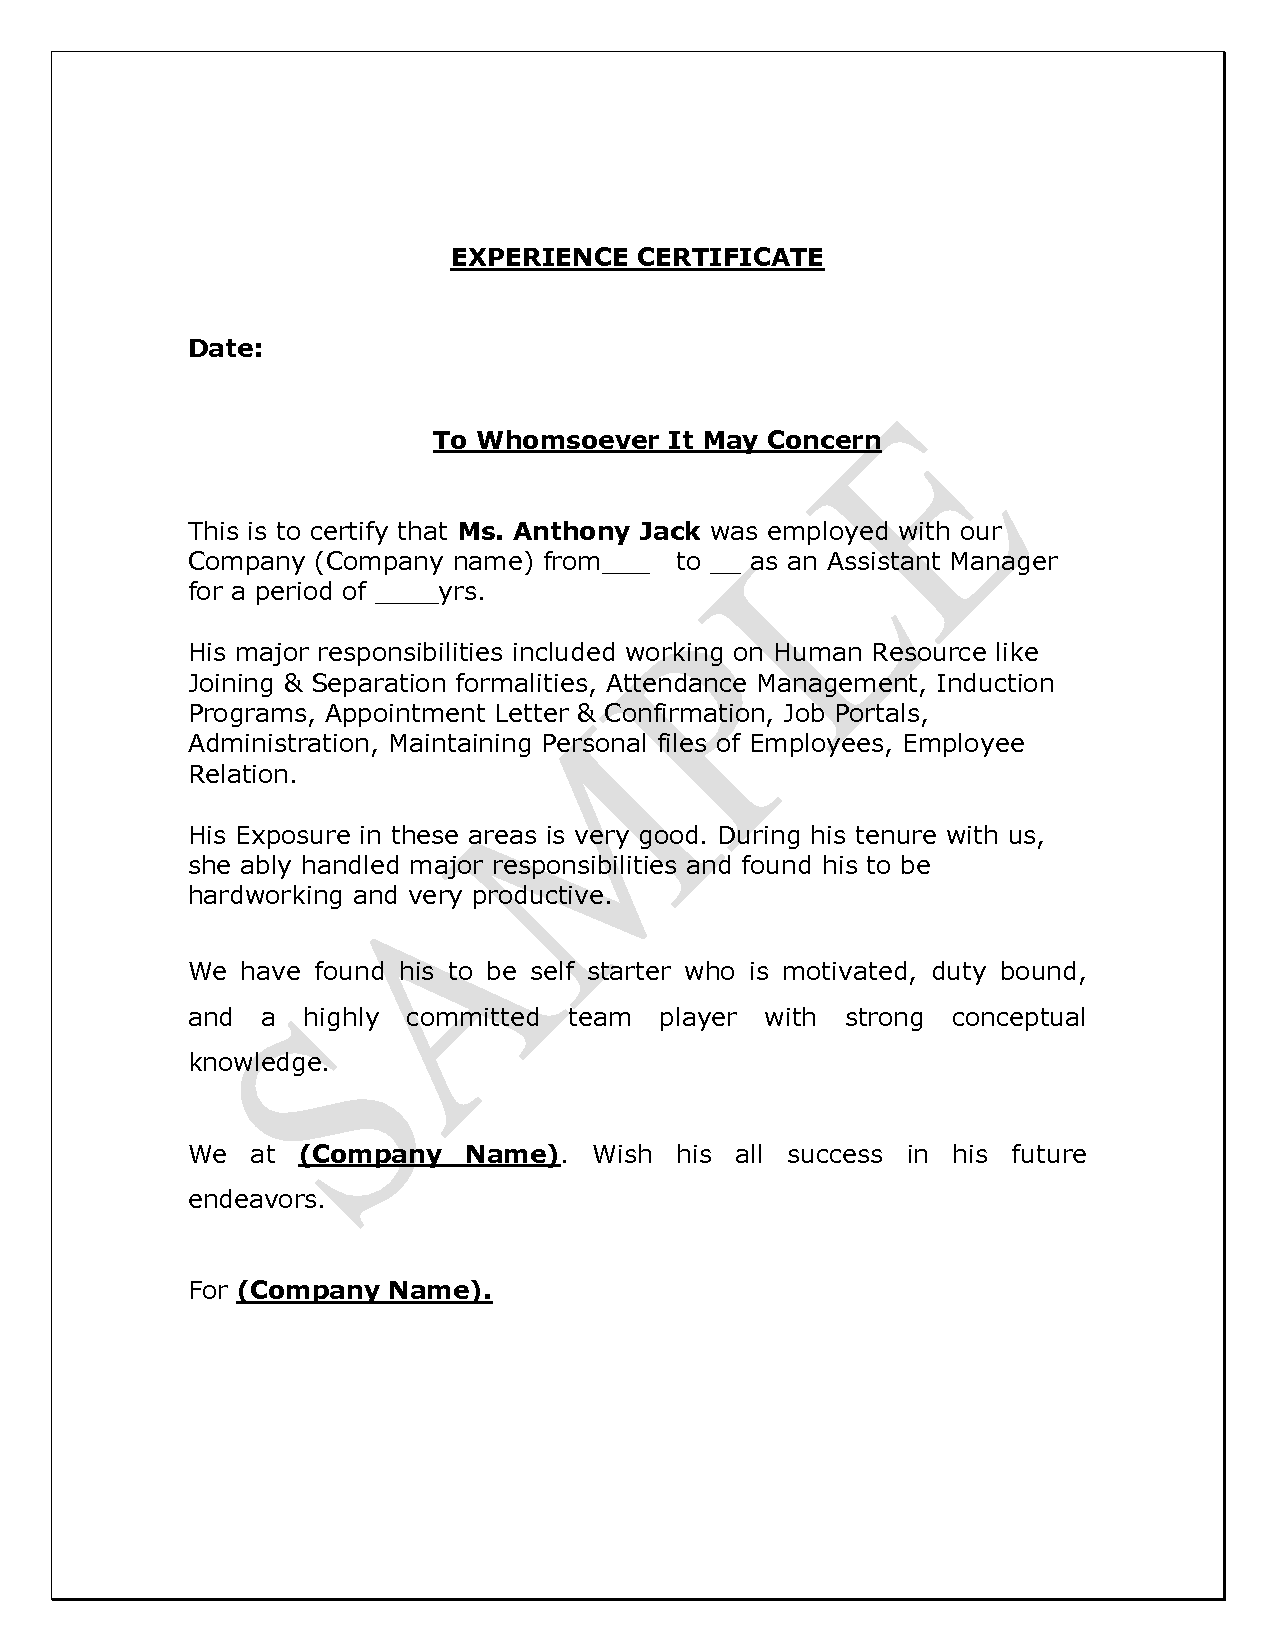 Experience Letter Doc | Experience Certificate Format In Word Free Download